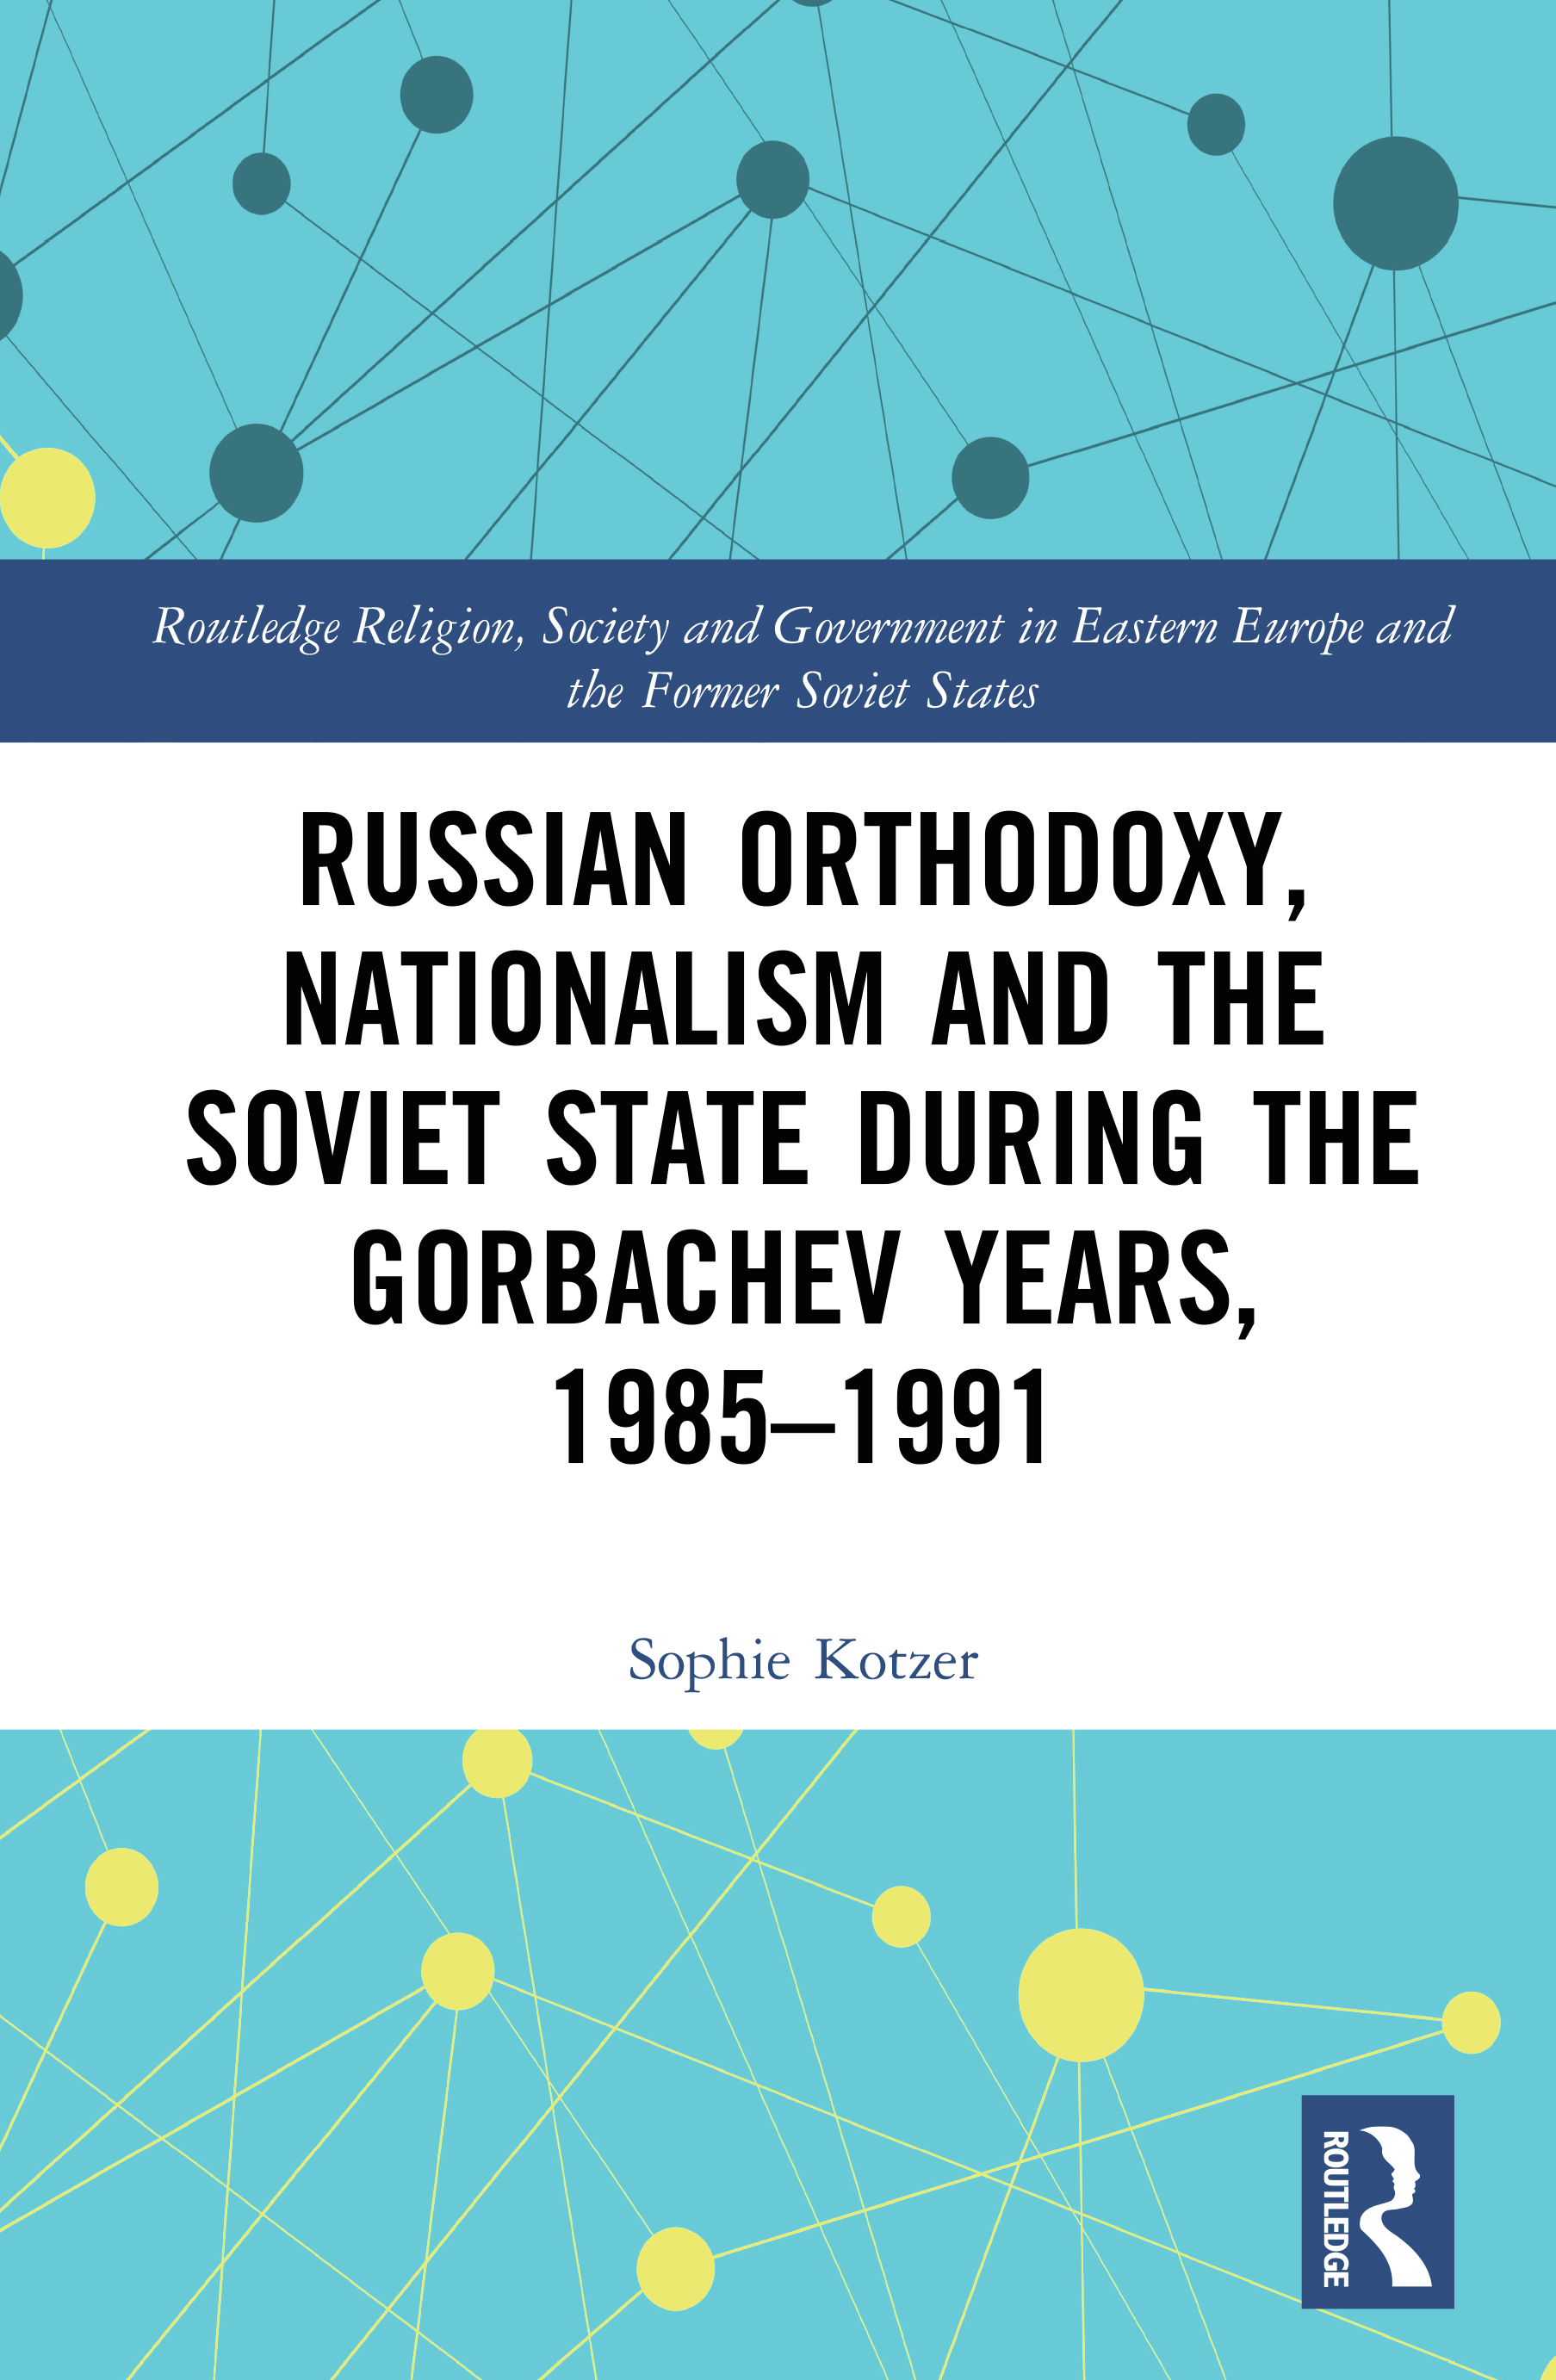 Russian Orthodoxy, Nationalism and the Soviet State during the Gorbachev Years, 1985-91 book cover